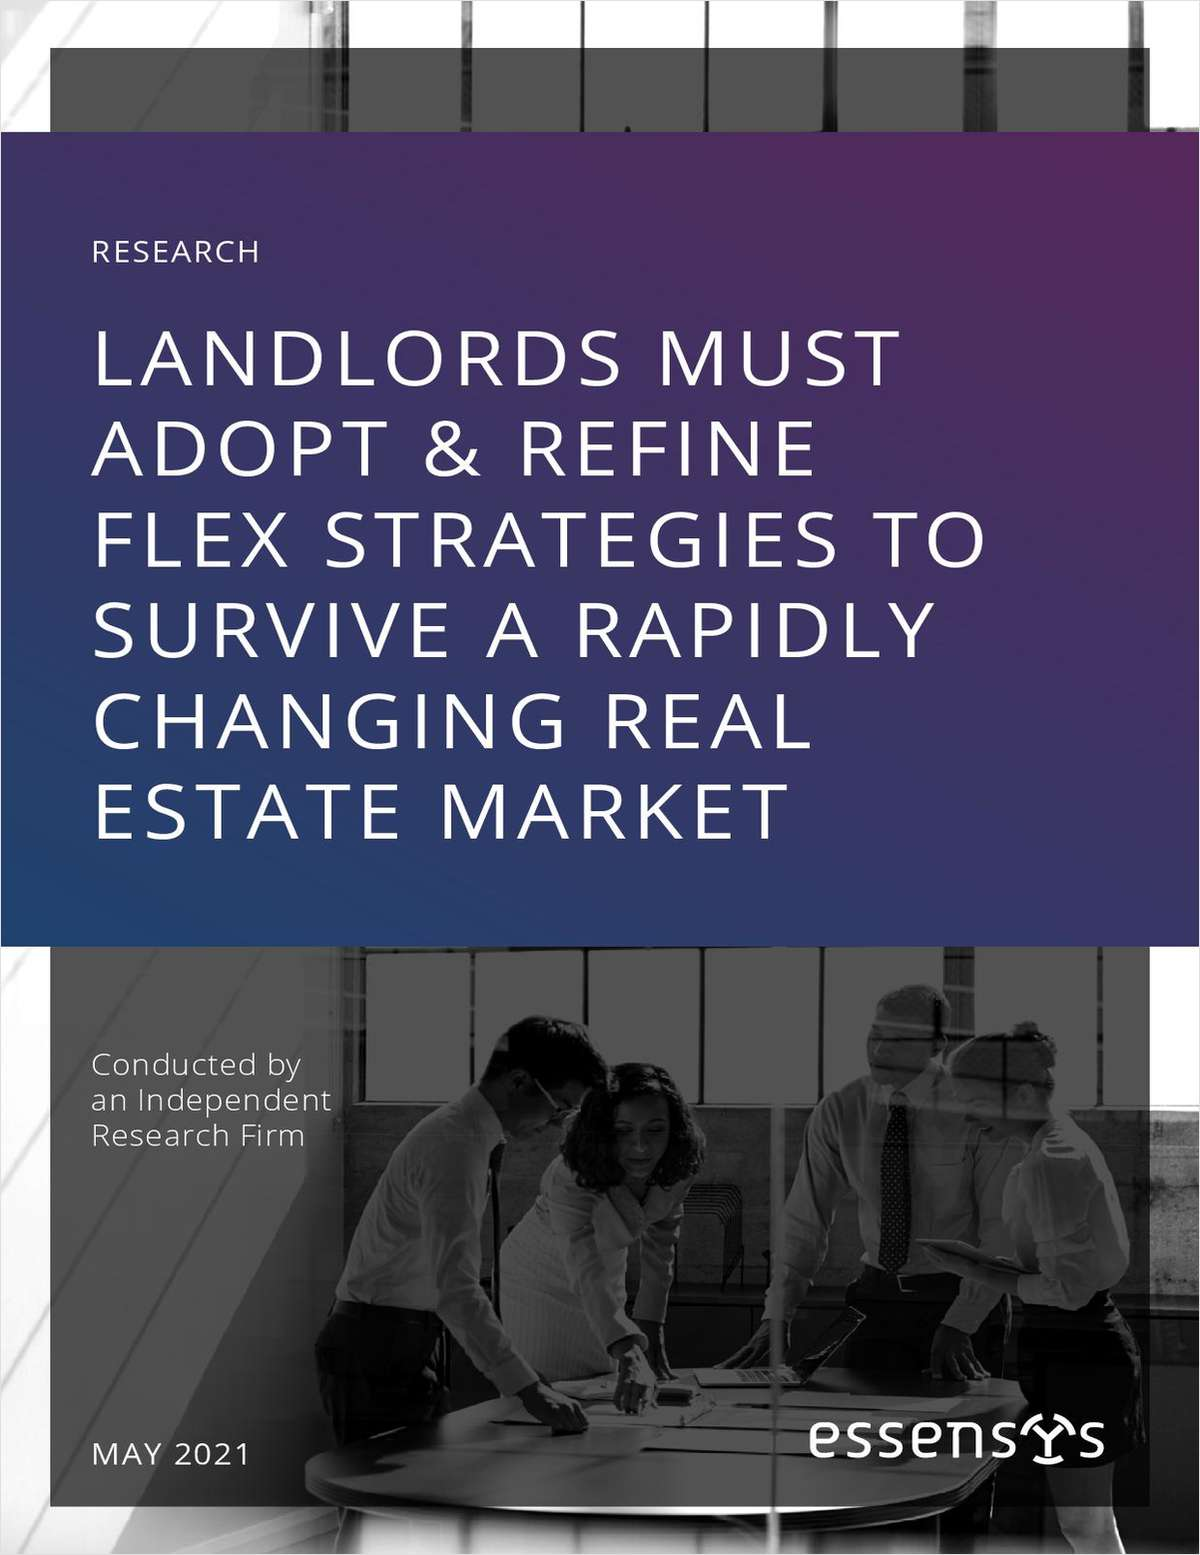 Why Landlords Must Adopt and Refine Flex Strategies to Survive a Rapidly Changing Real Estate Market